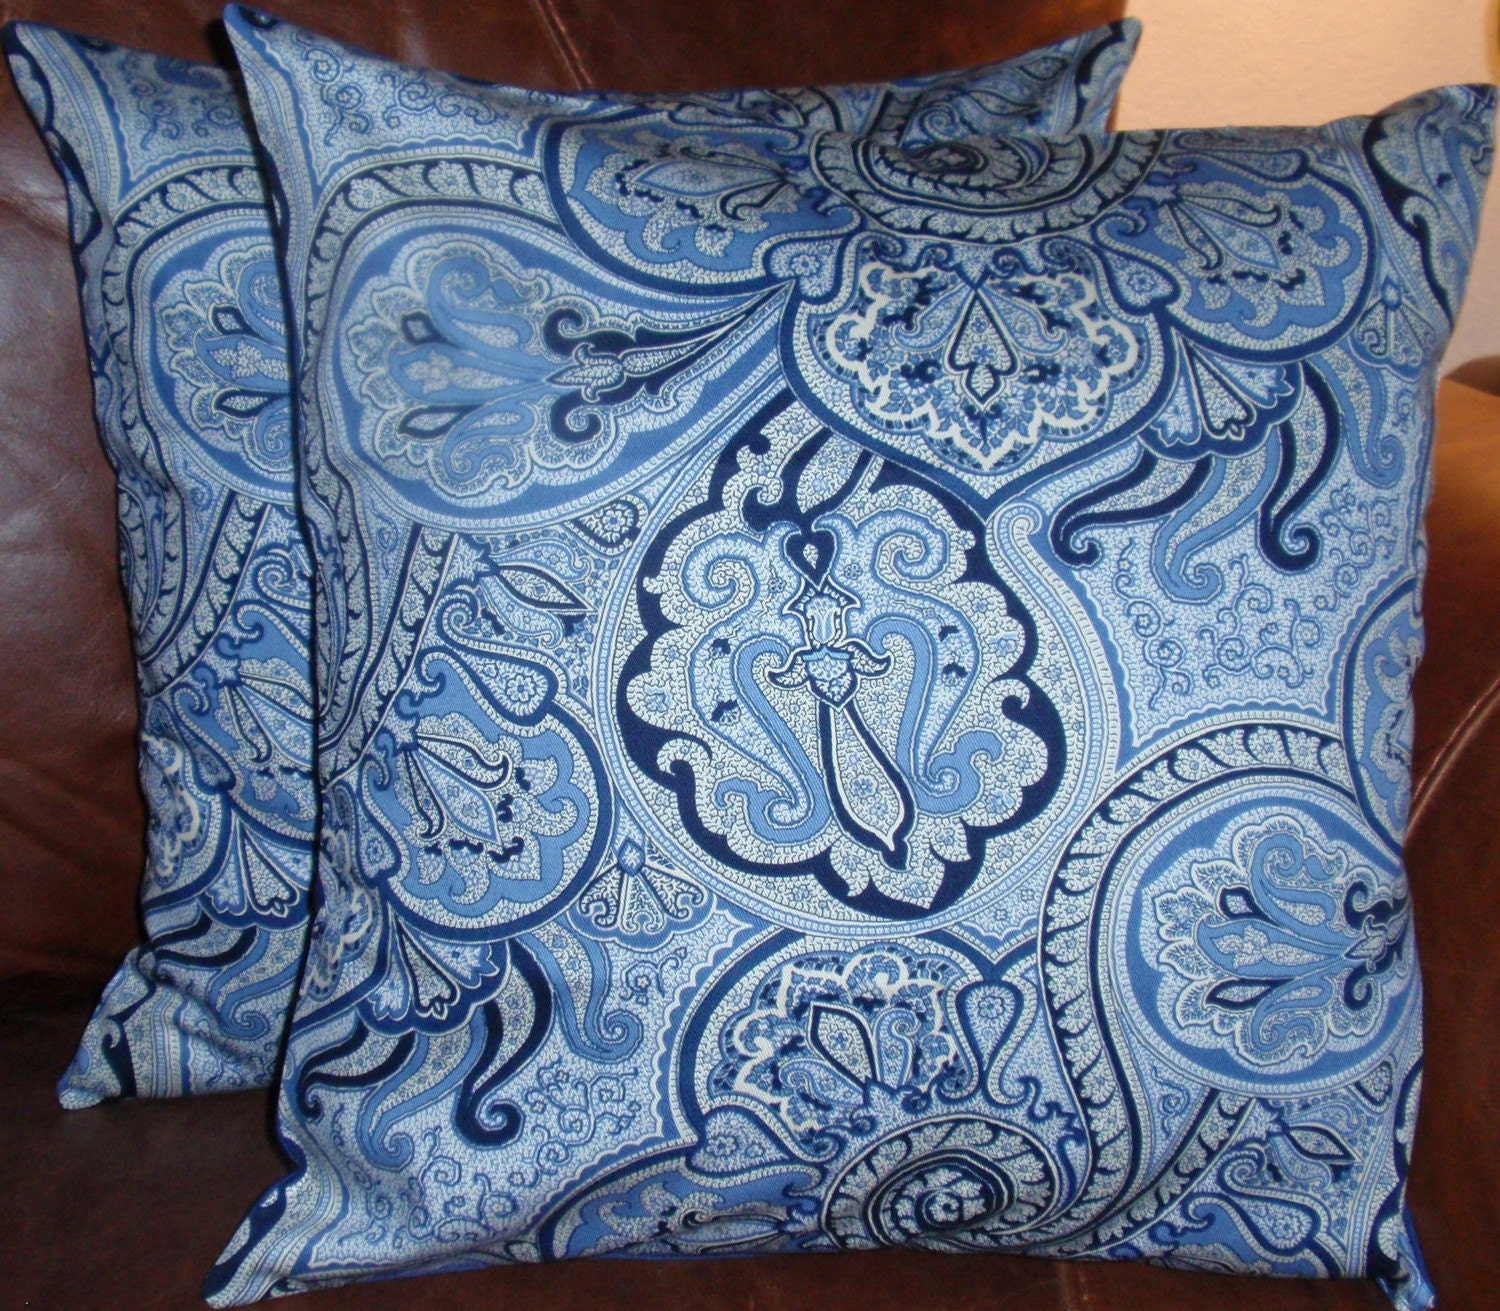 Decorative Pillows With Removable Covers : Throw Pillow removable cover 16x16 Set of 2 sewn with